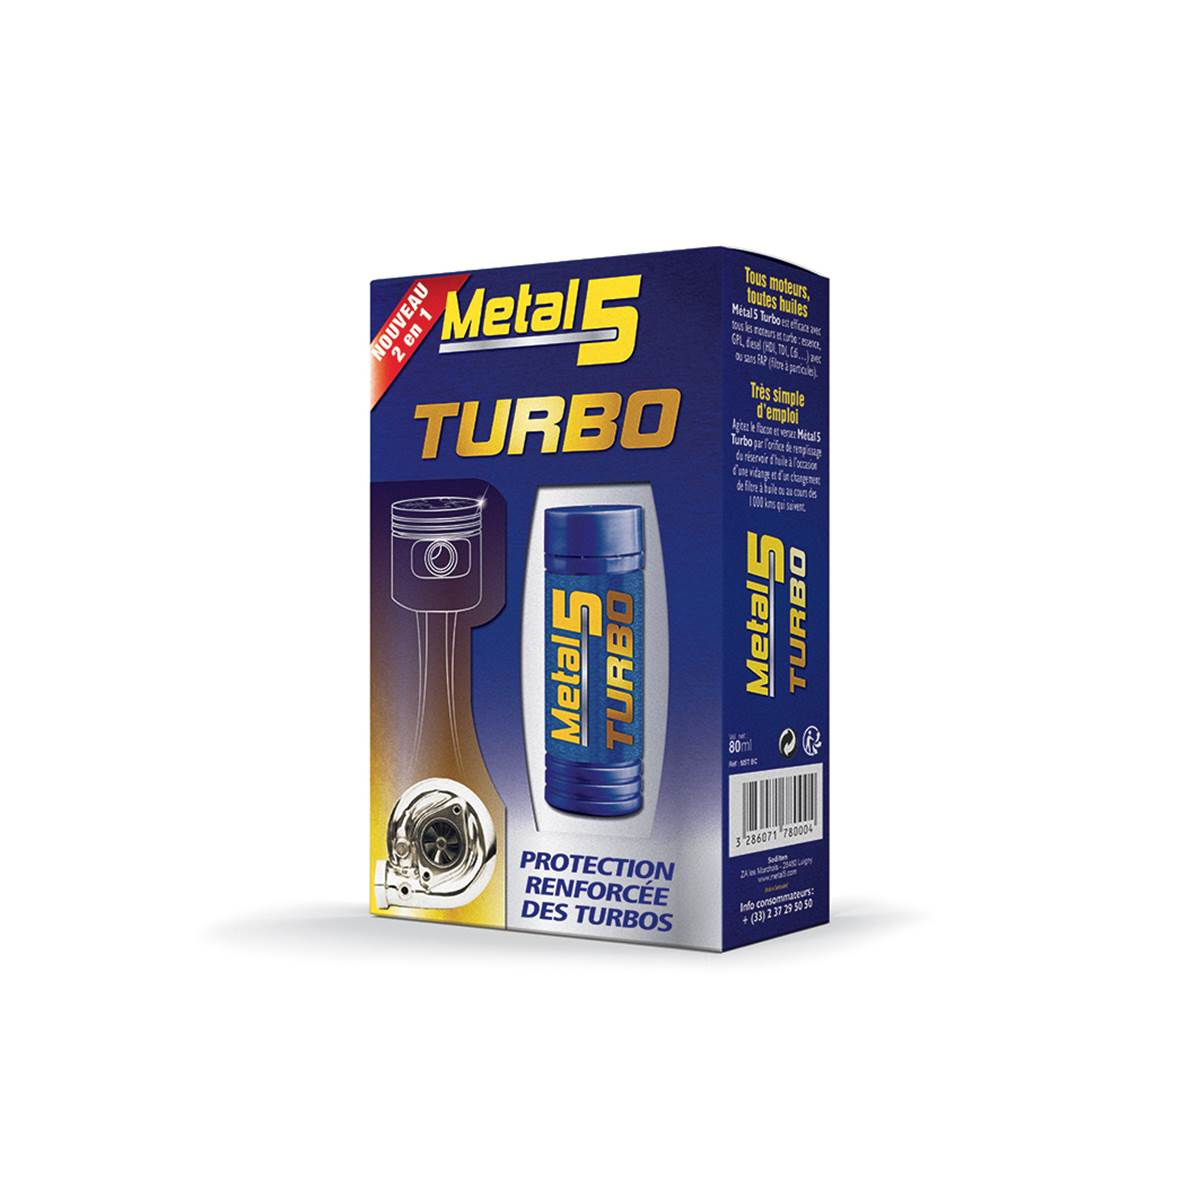 METAL 5 Curatif Turbo 80ml